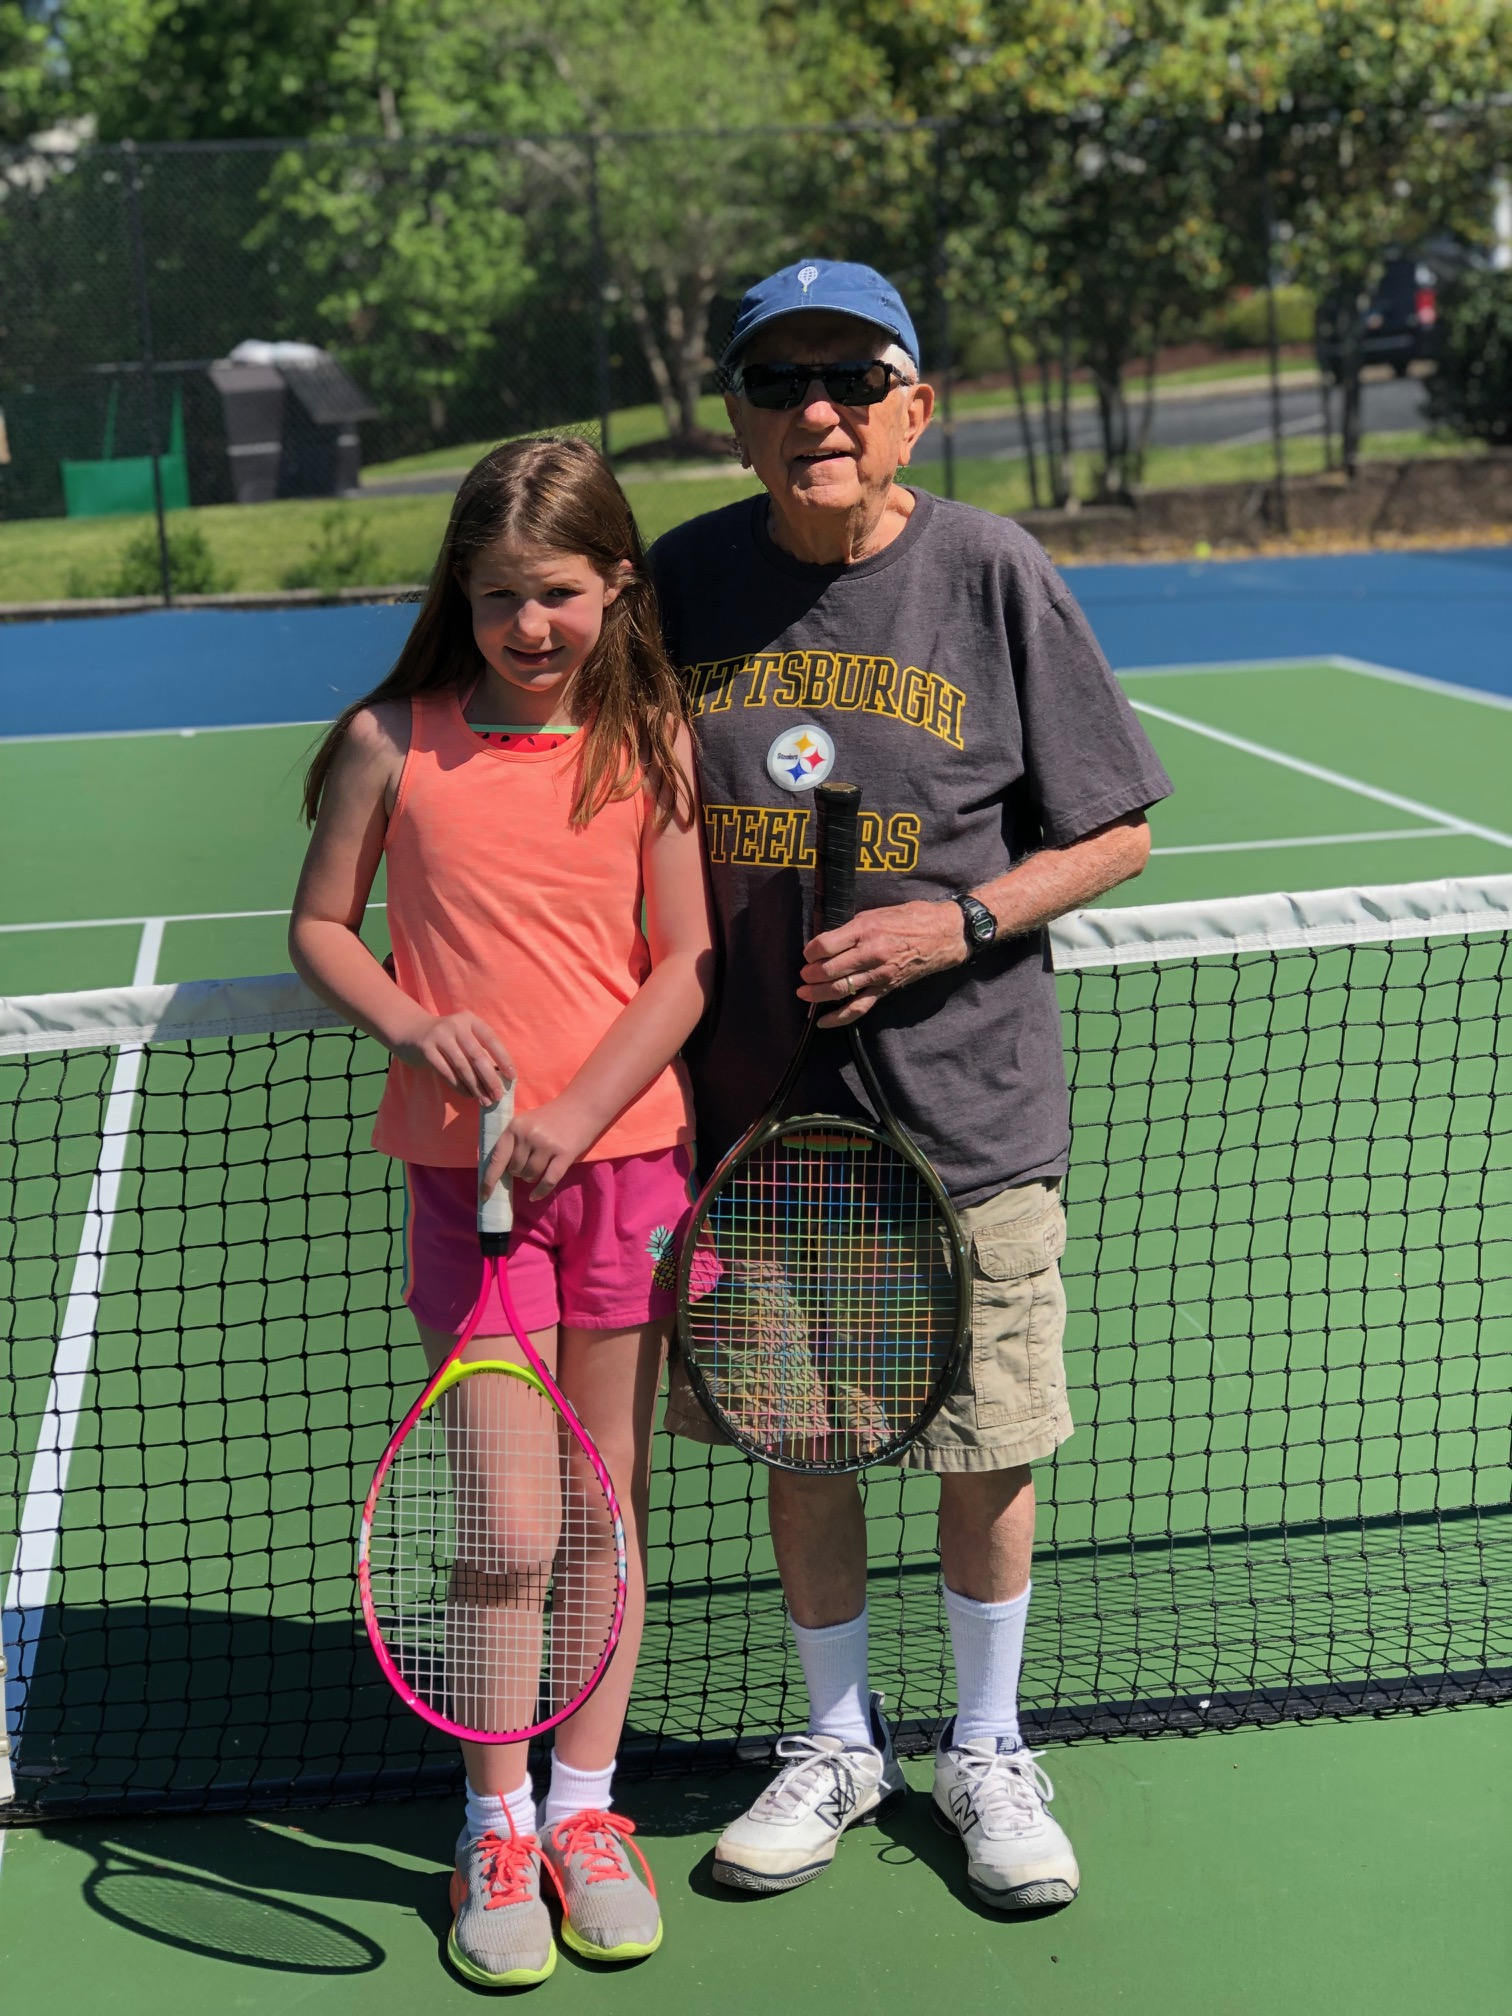 Grandpa and Kate playing tennis